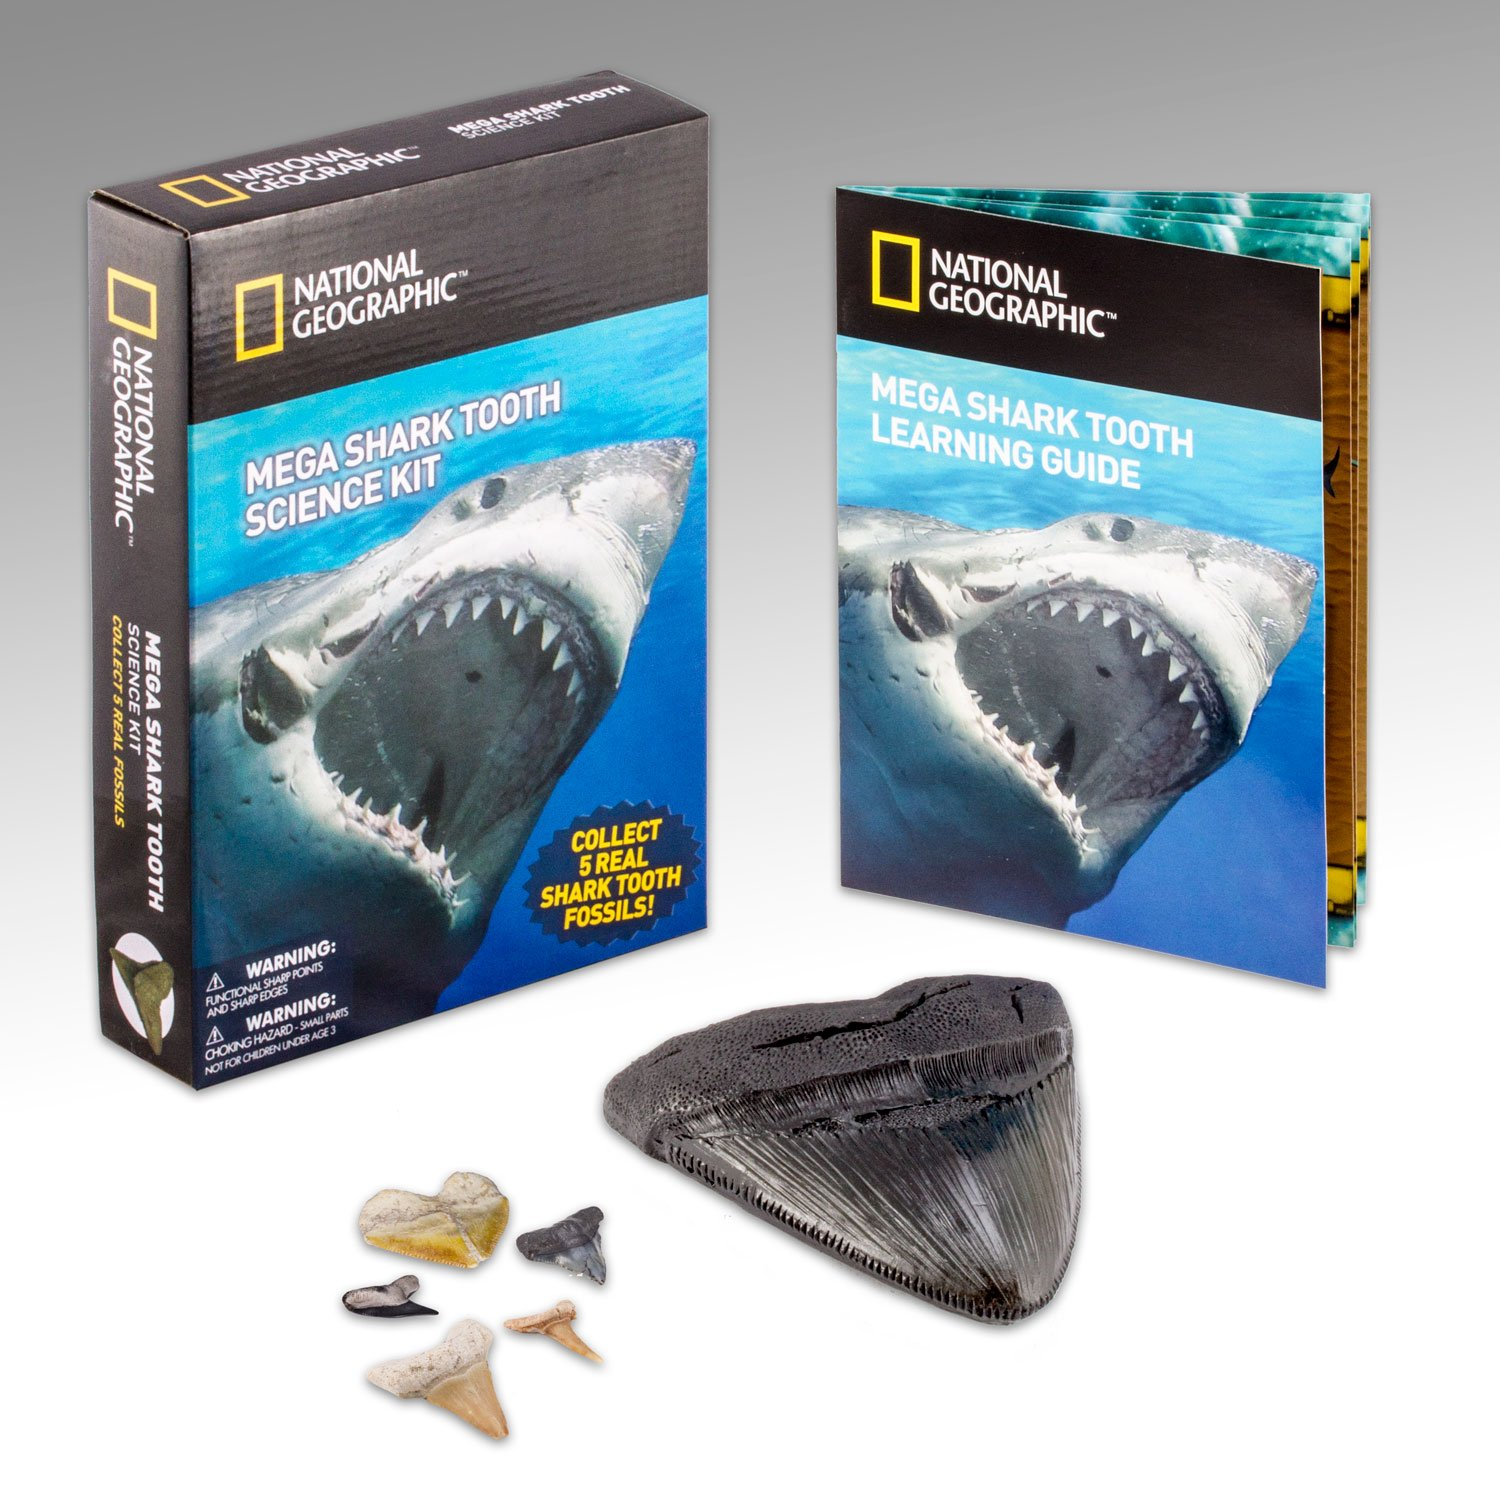 amazon com national geographic mega shark tooth science collect 5